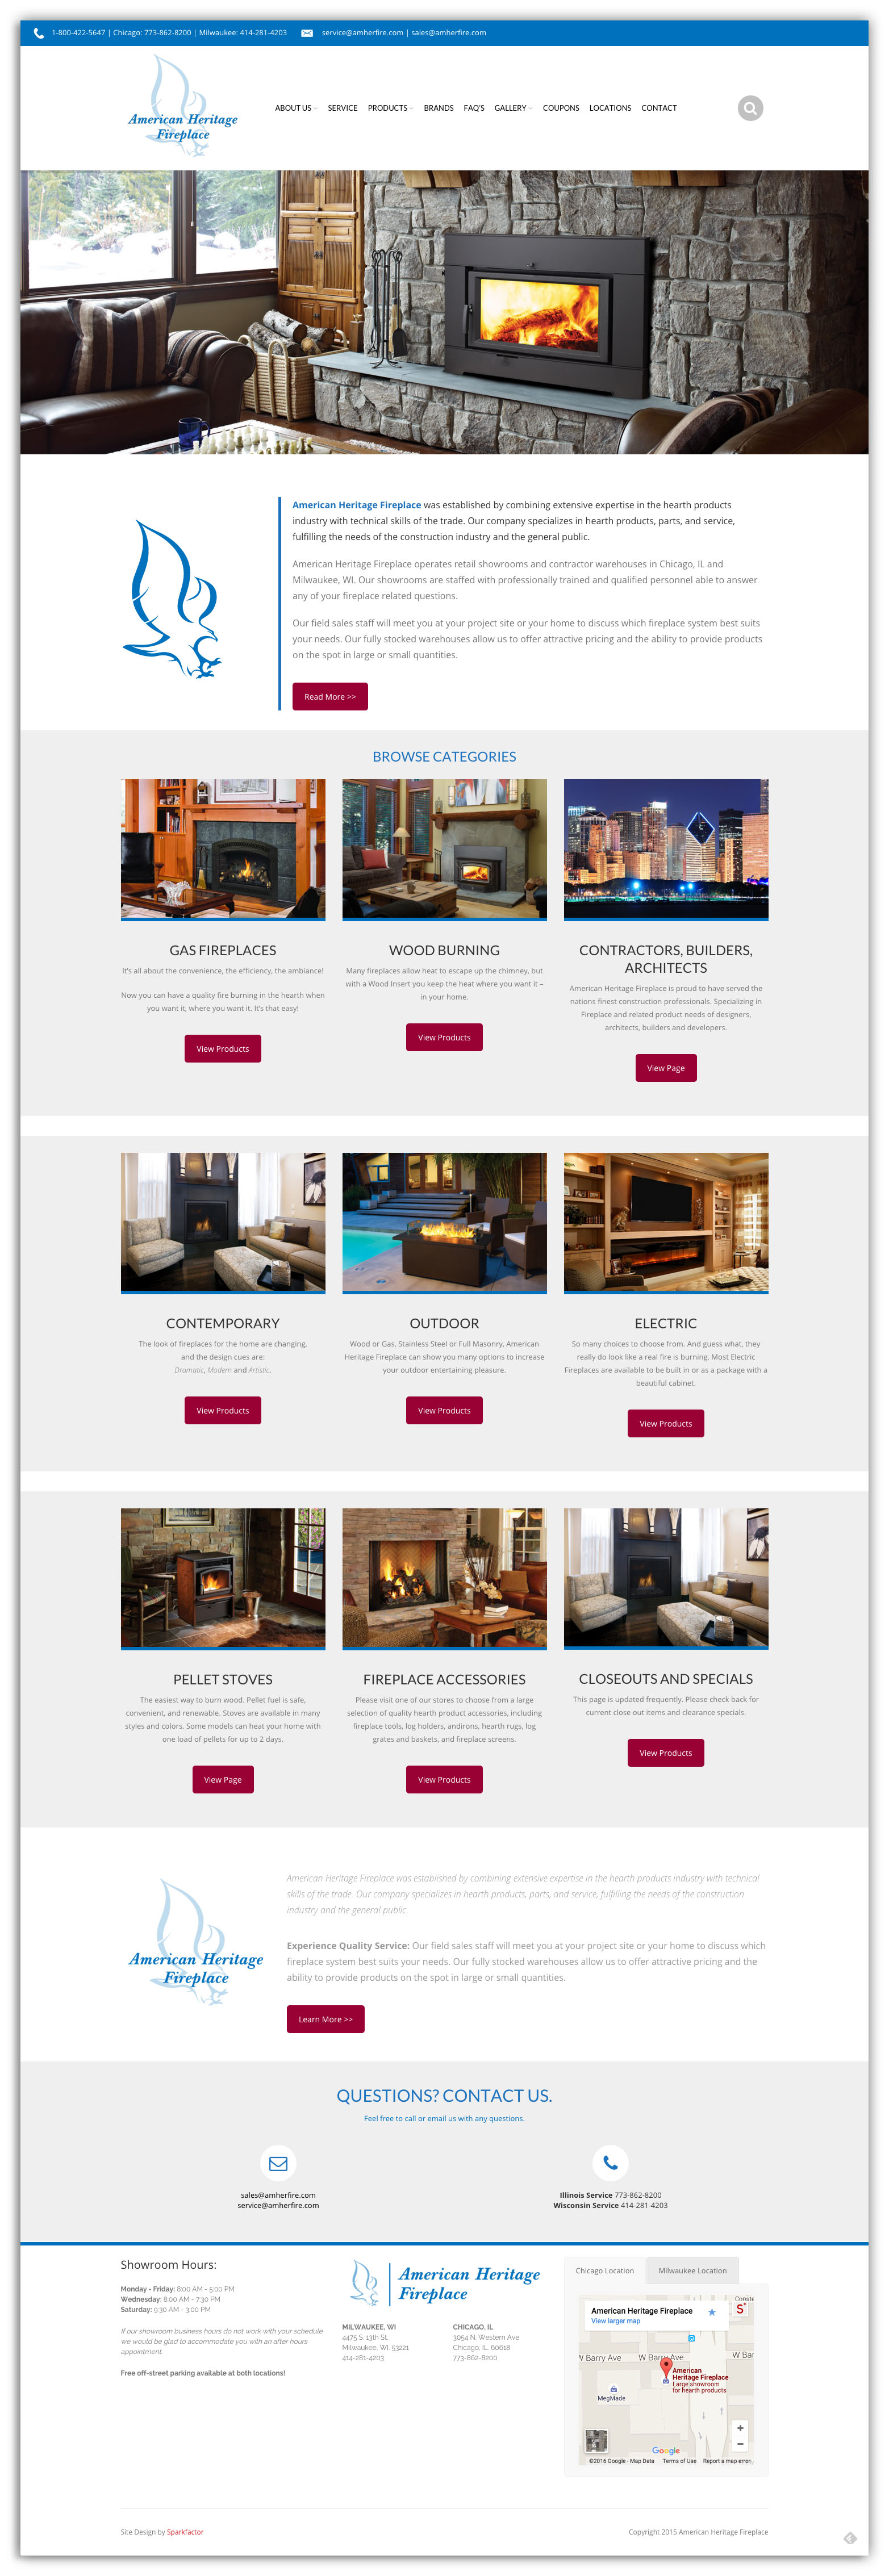 American Heritage Fireplace connected with Sparkfactor to update their website using a mobile-friendly template.